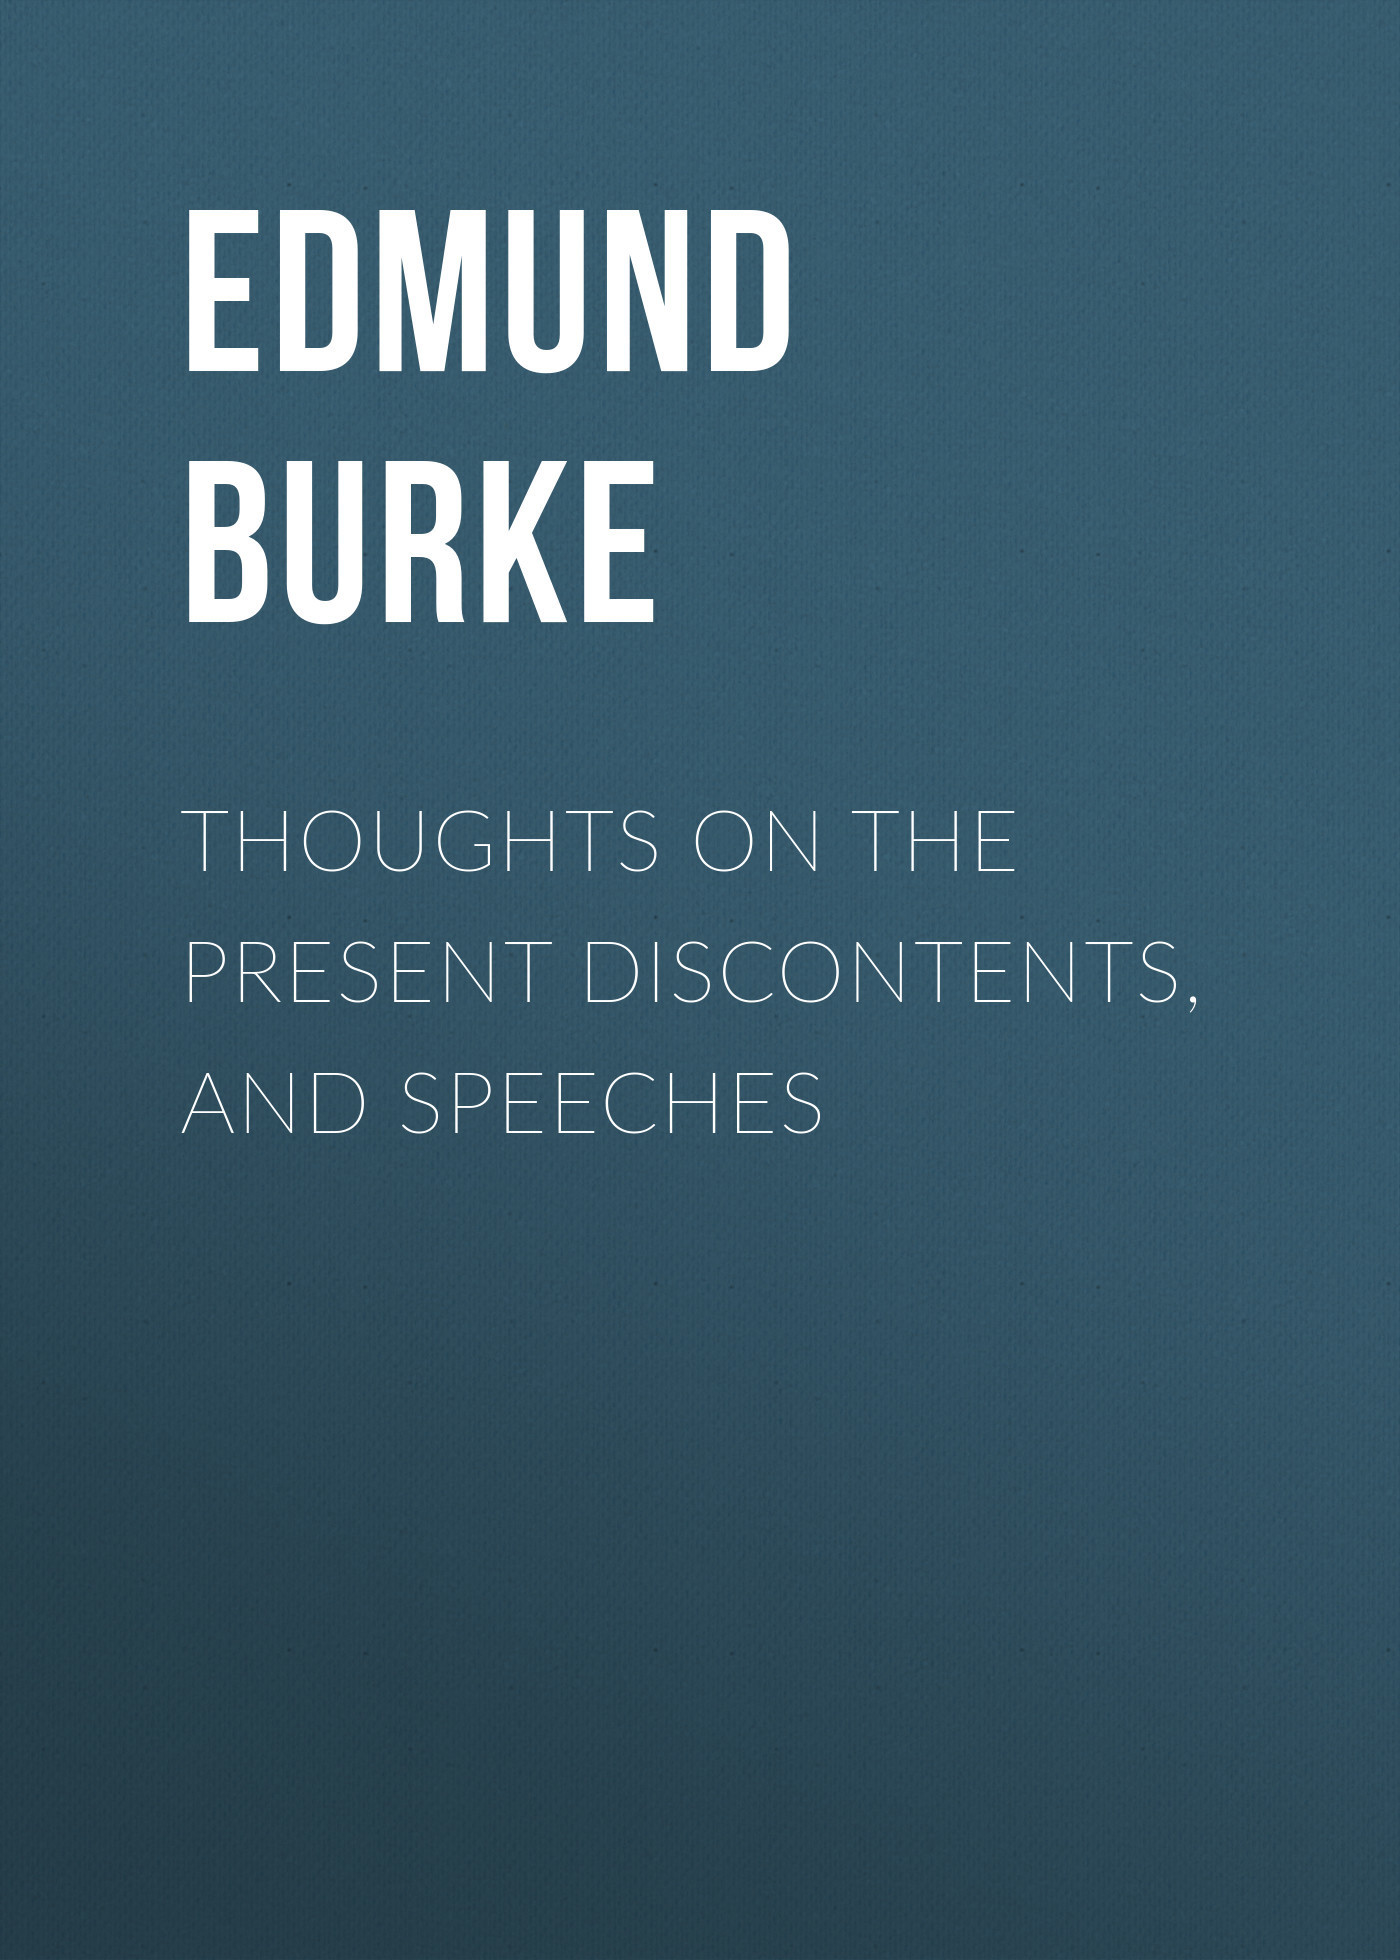 Edmund Burke Thoughts on the Present Discontents, and Speeches alexandra burke westcliff on sea